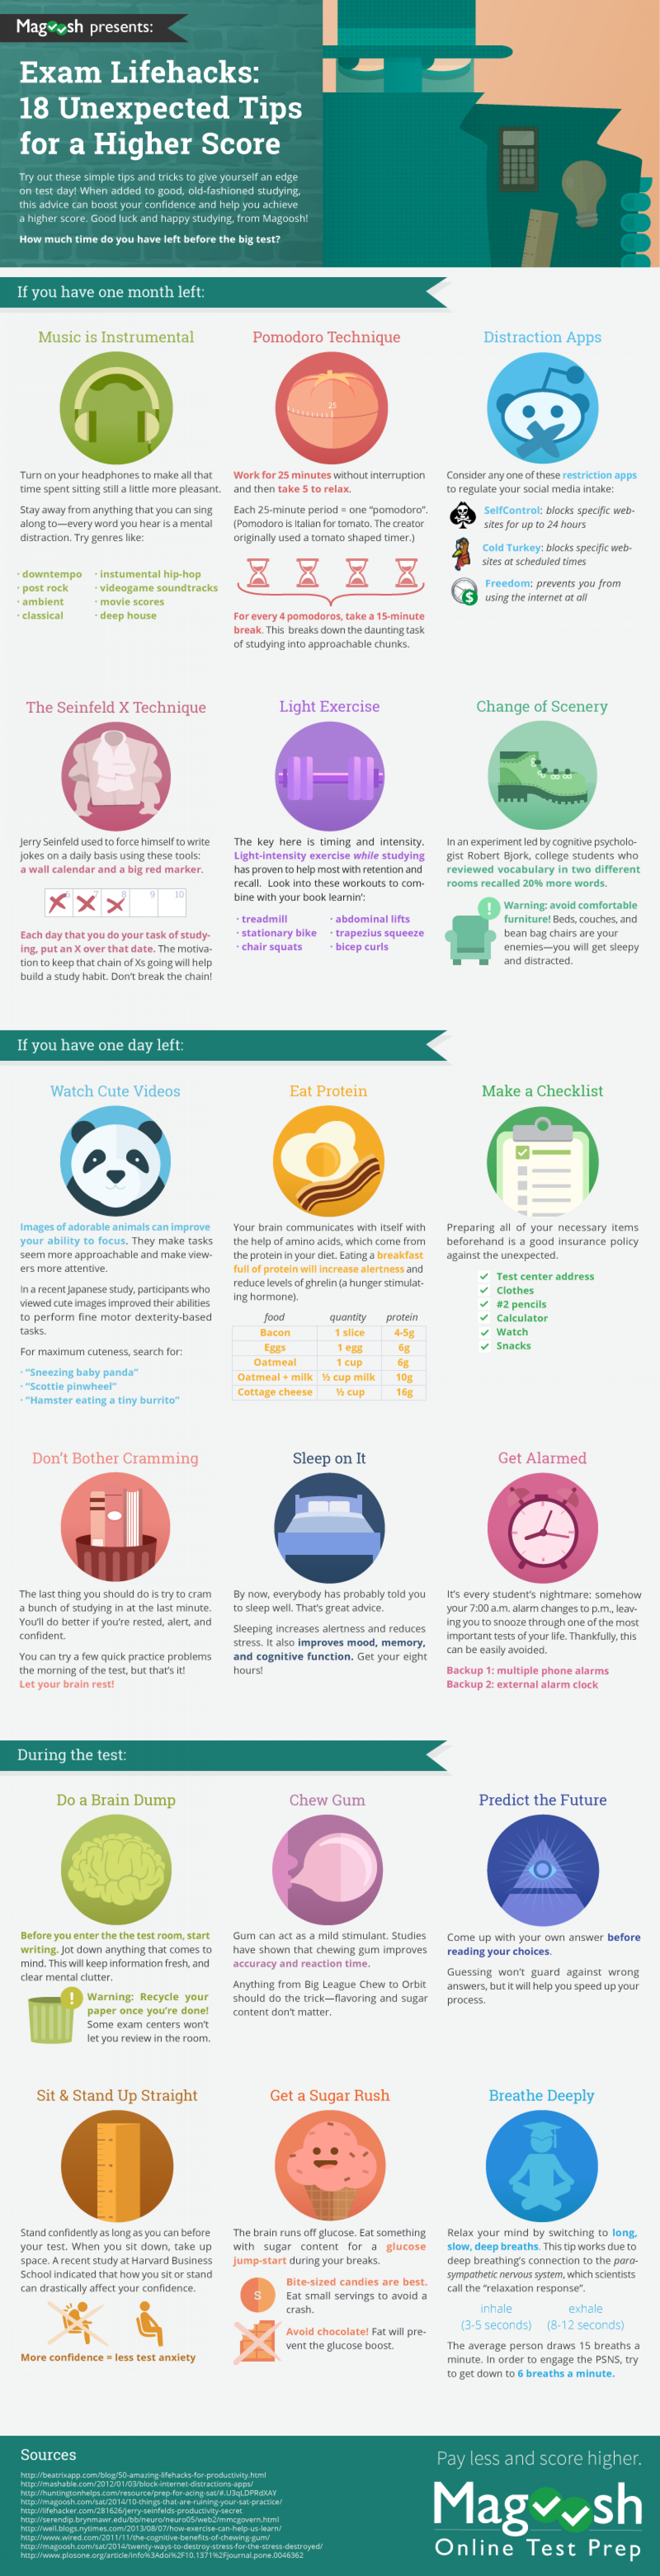 Exam Lifehacks: 18 Unexpected Tips for a Higher Score Infographic